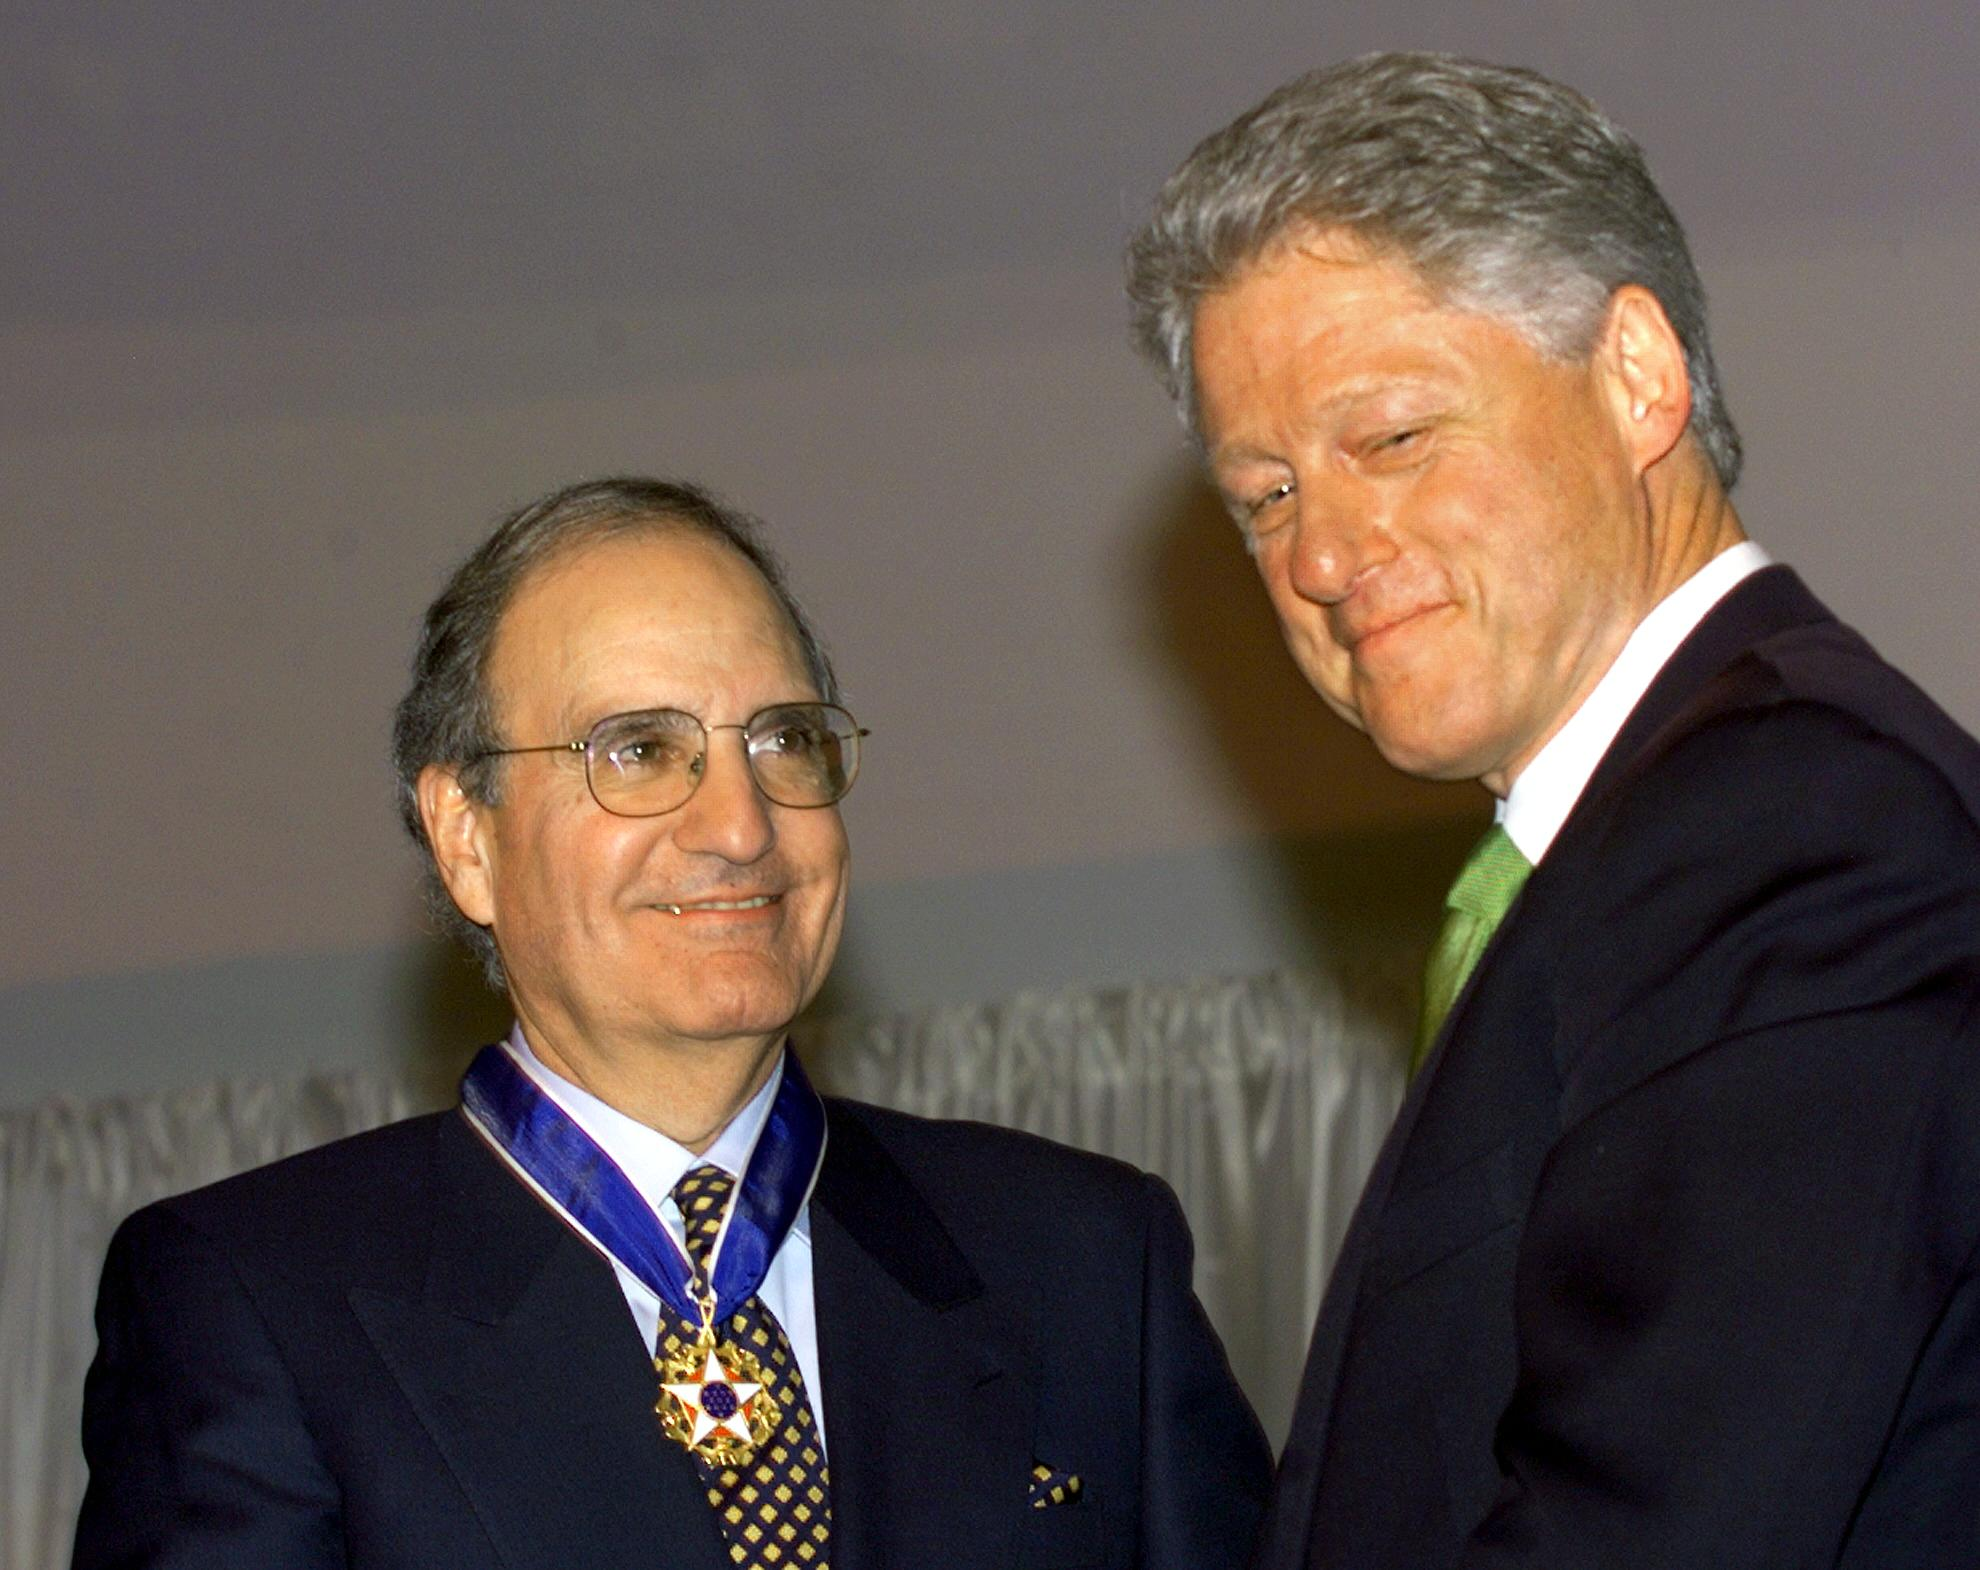 Mitchell receives the Presidential Medal of Freedom for his work to bring peace to Northern Ireland.